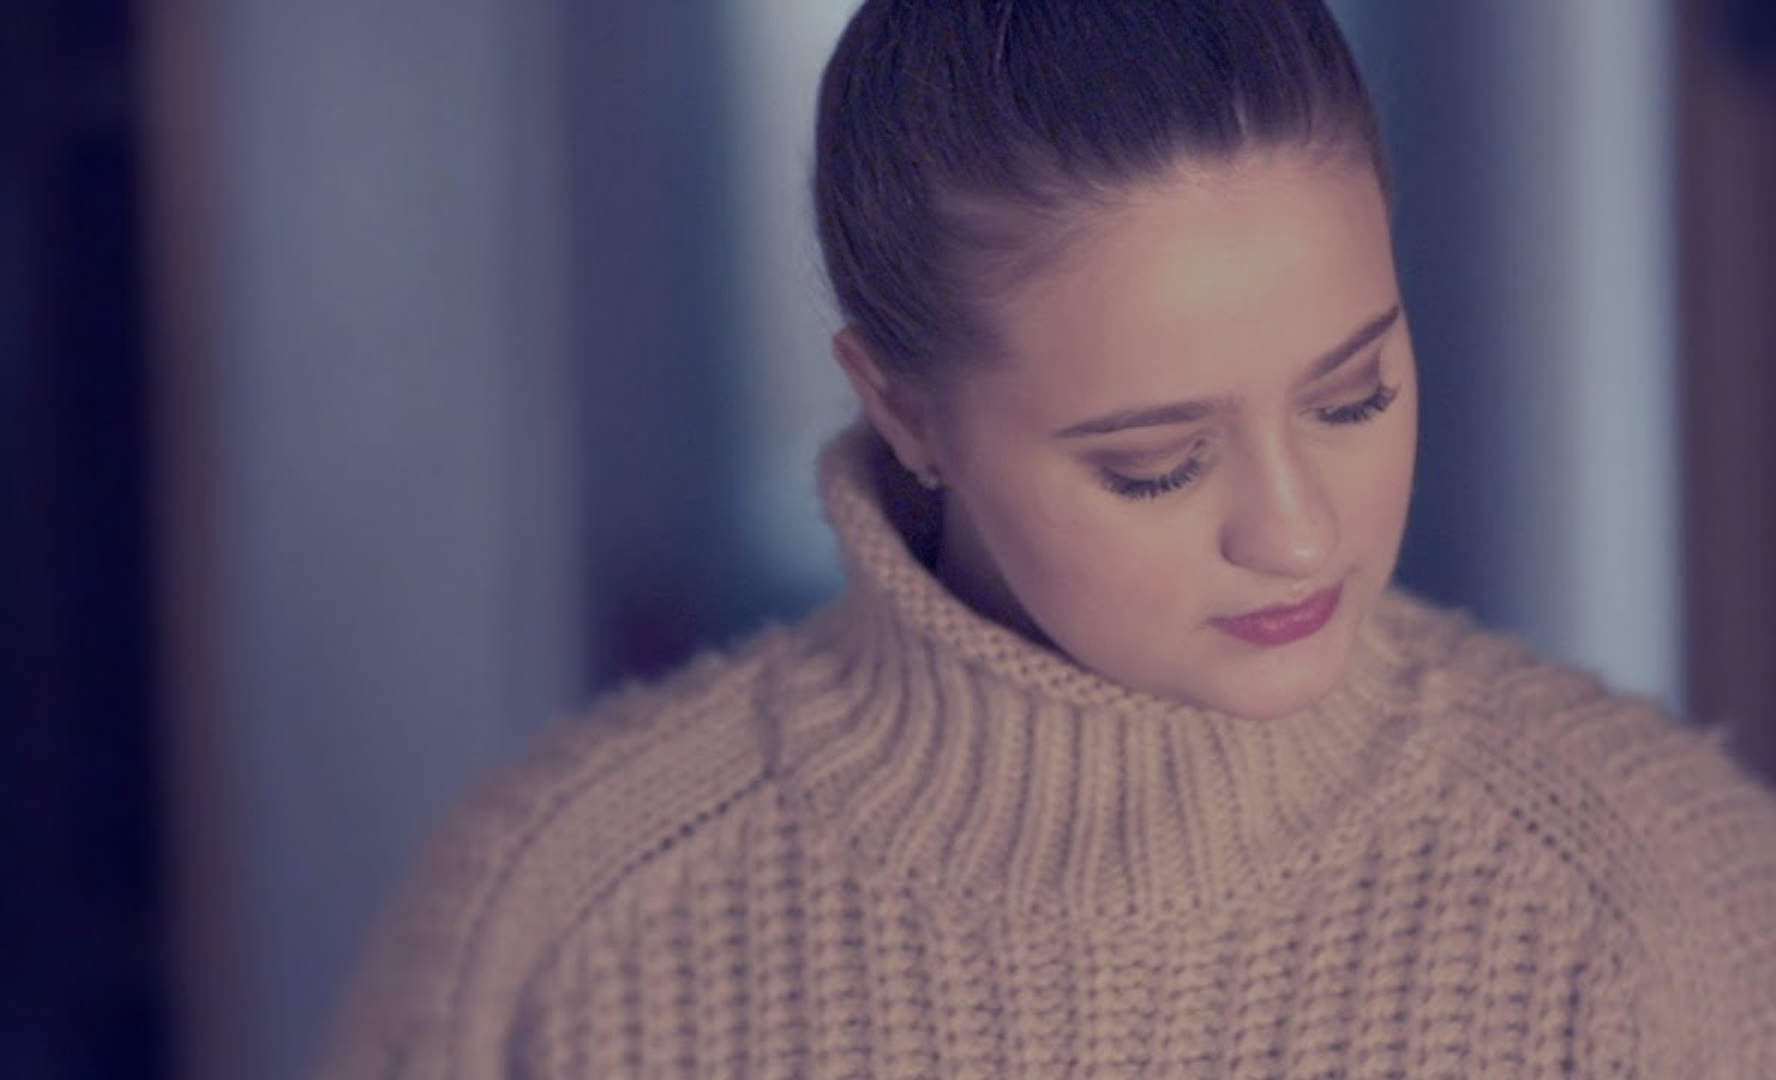 Phoebe Austin - I Came here to win - Official video - Anti Bullying